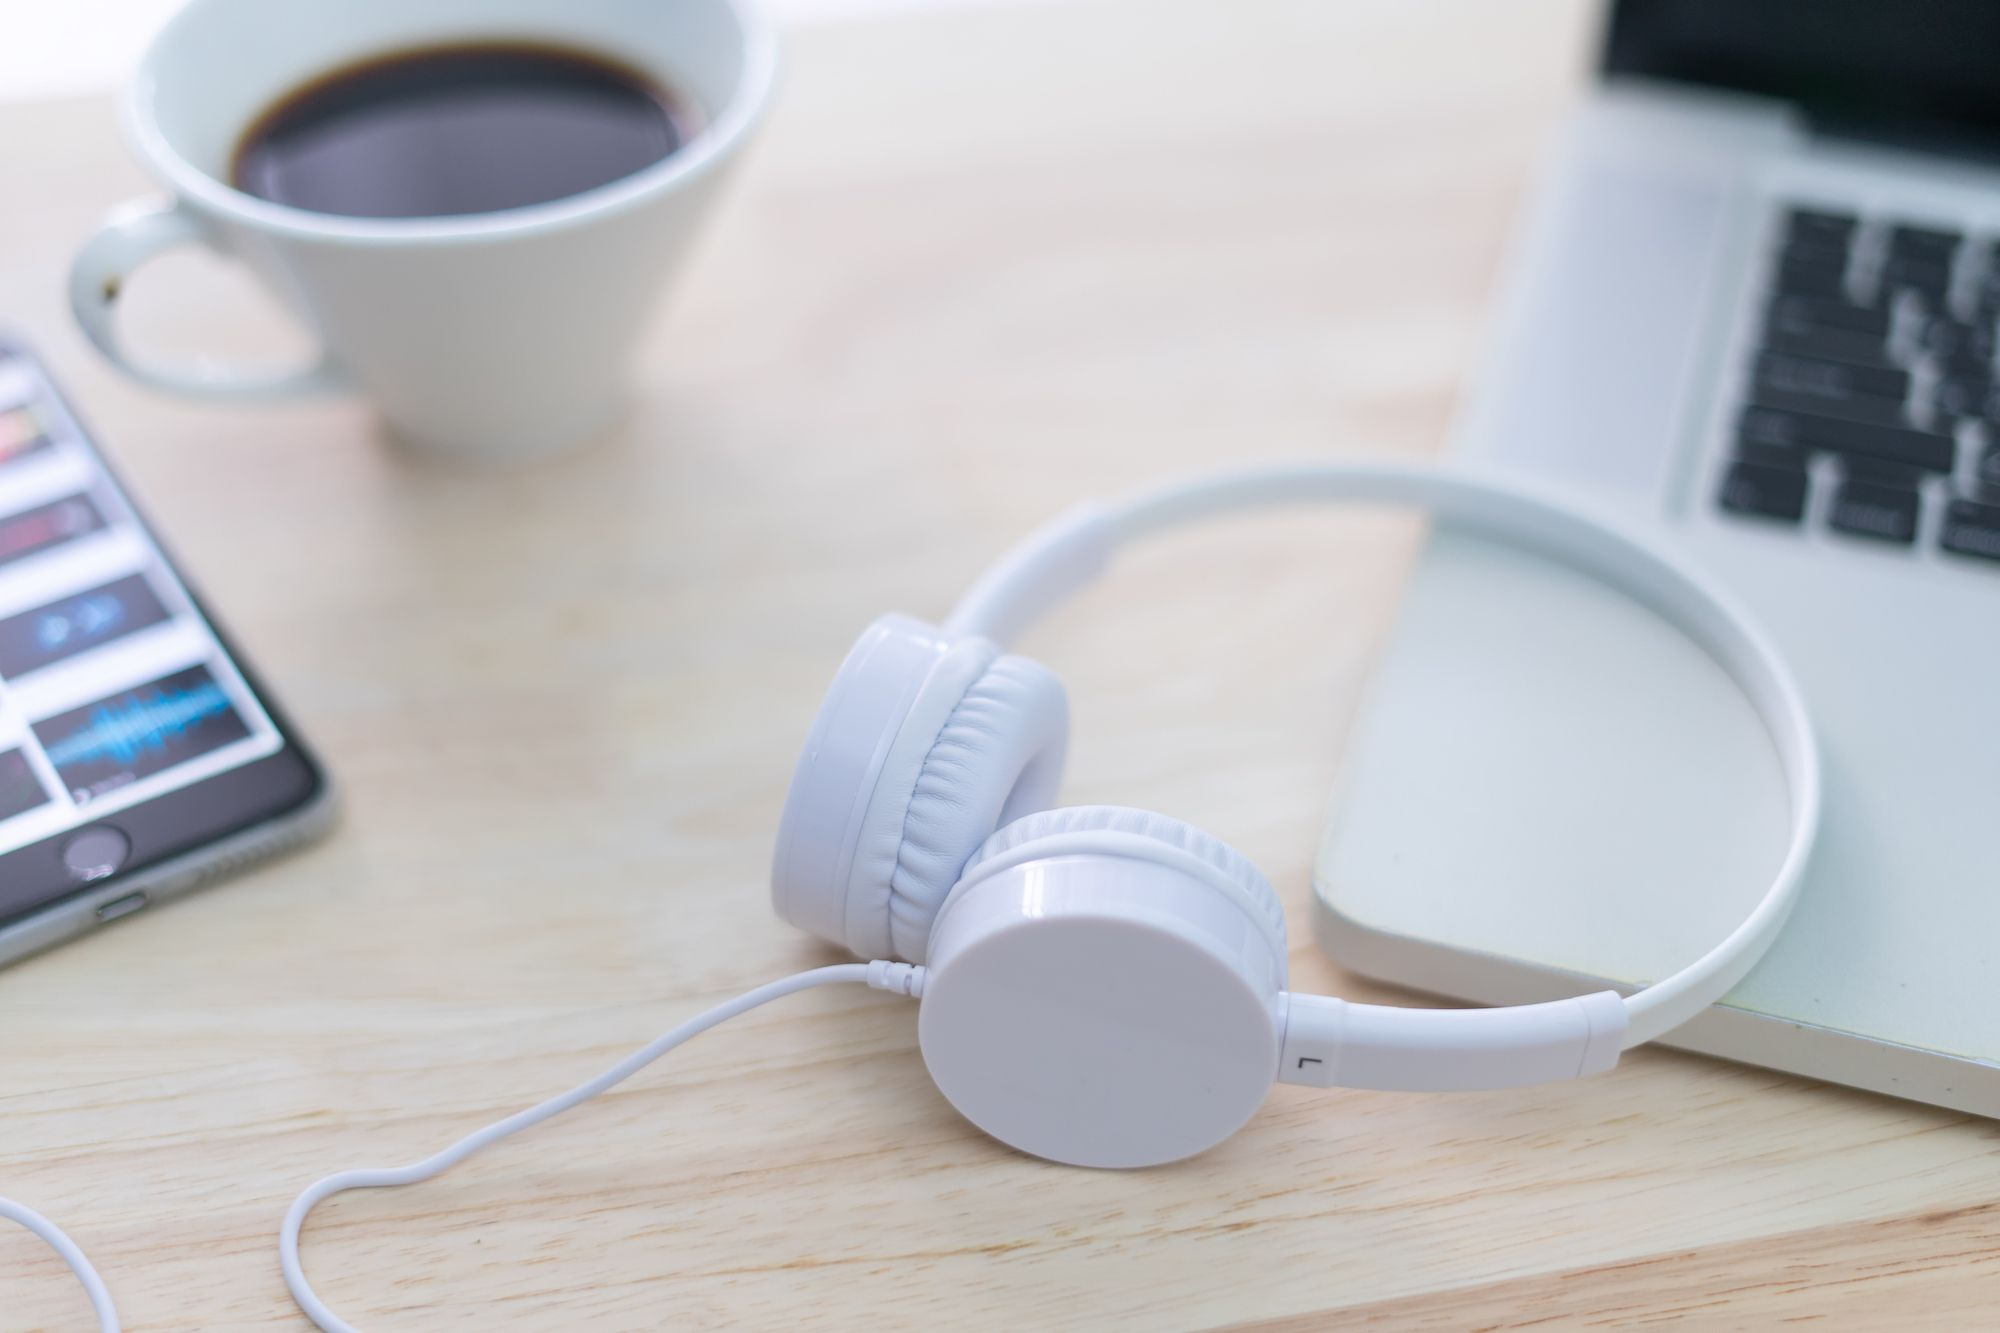 Headphone with Laptop on the table.